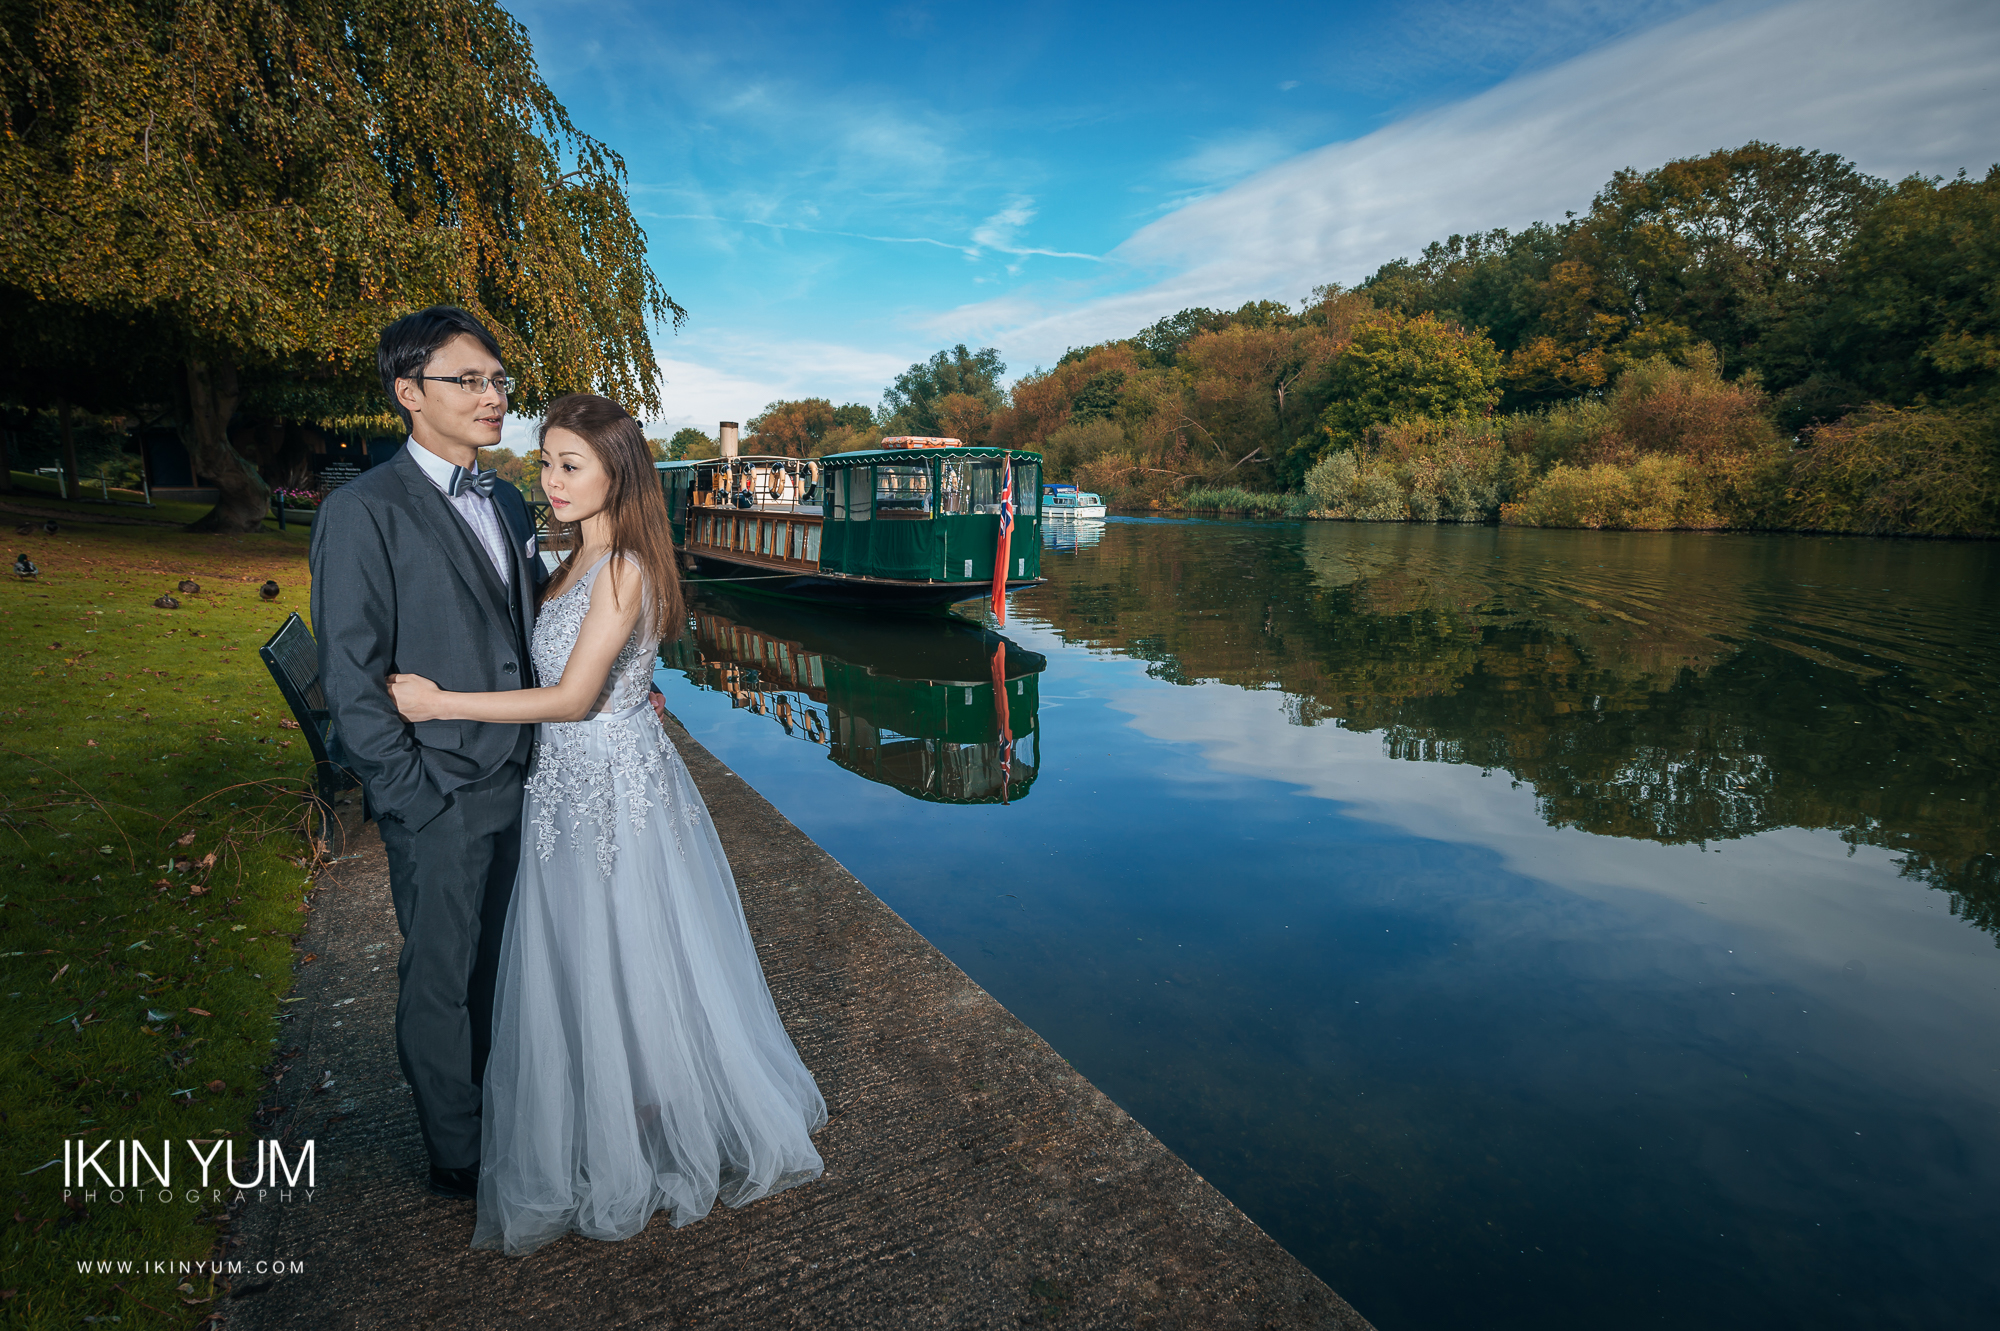 The oakley court Pre-Wedding Shoot - Ikin Yum Photography-011.jpg